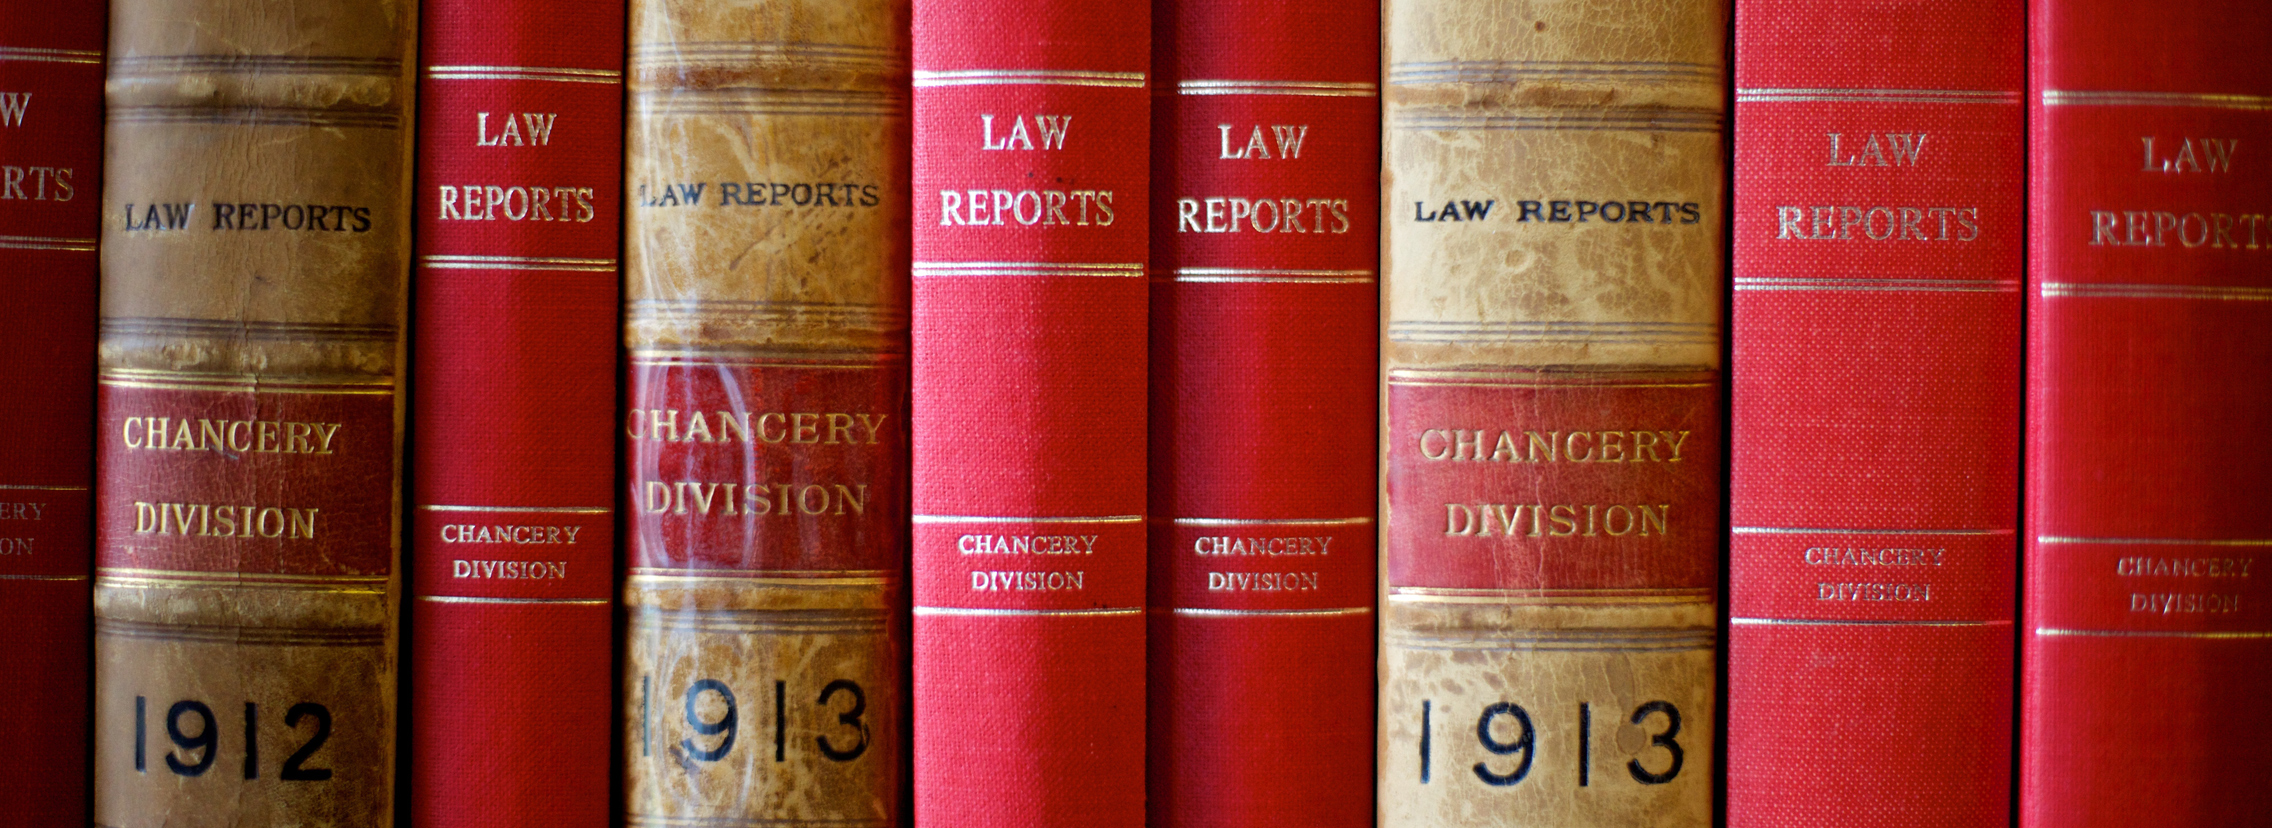 Law Text Books